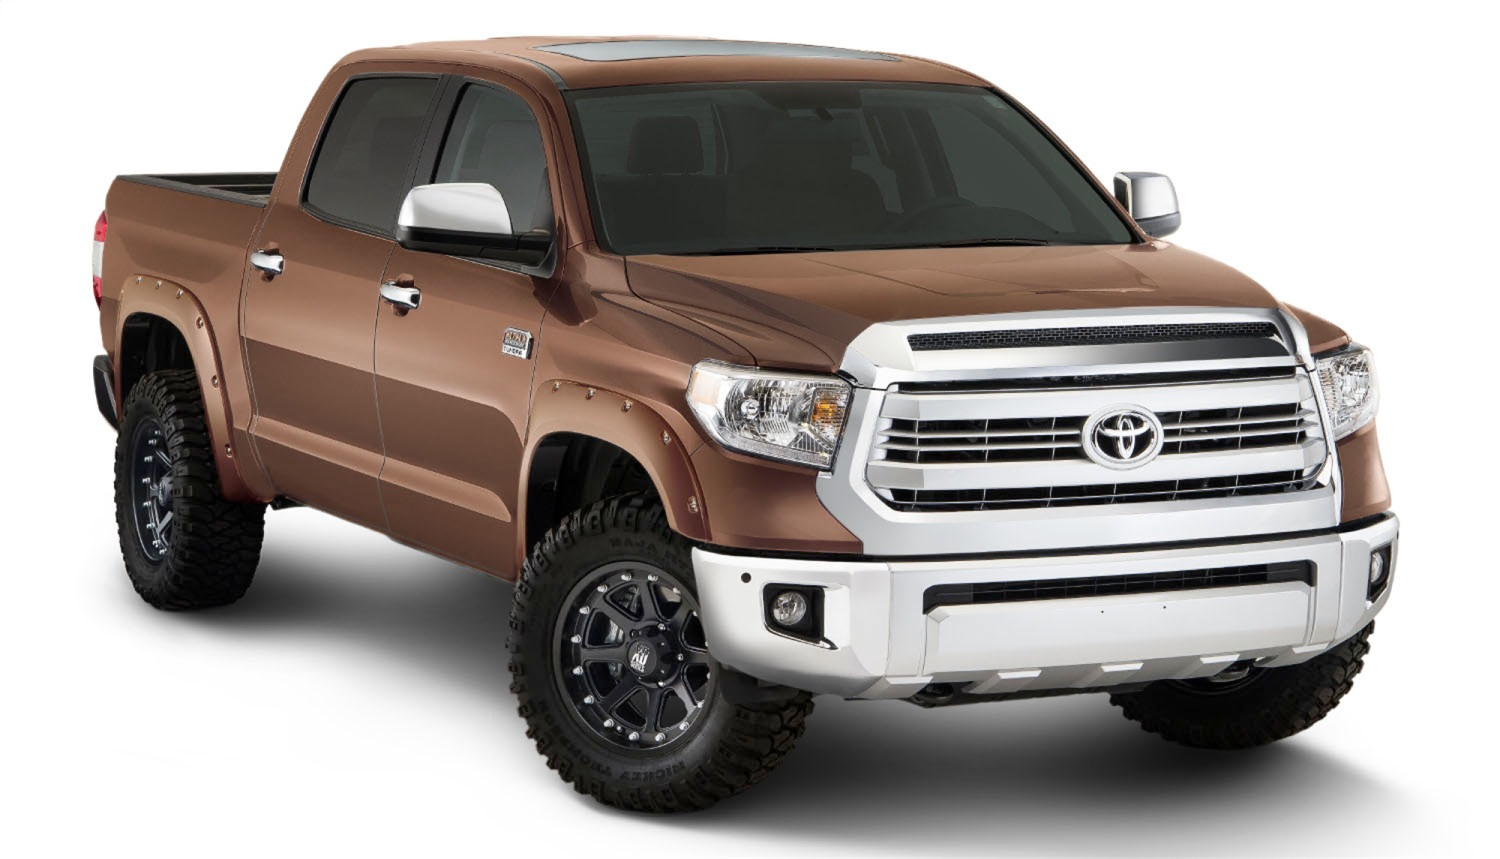 Pocket Styler Painted Fender Flares, 4 pc., Front Tire Coverage 1.75 in., Front Height 4.5 in., Rear Tire Coverage 1.75 in, Rear Height 4.5 in., Sunset Bronze Mica